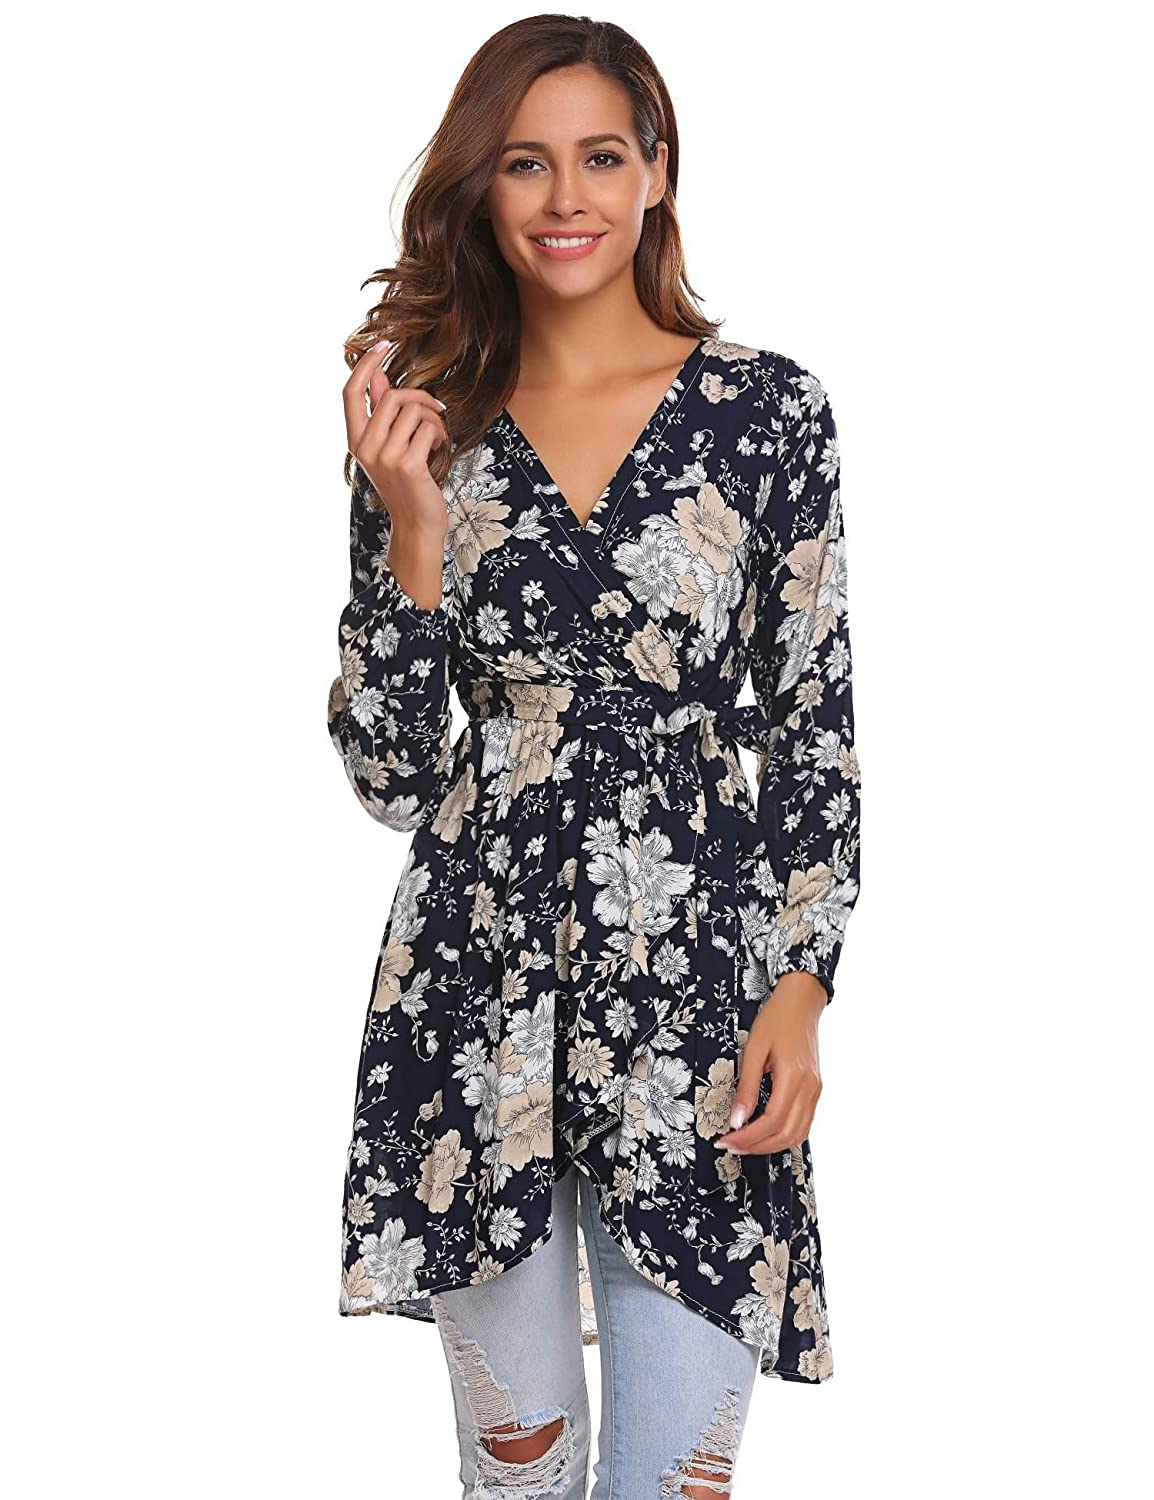 dc191b35190 SoTeer Women s V-Neck Floral Print Tunic Top Sexy Casual Long Sleeve Mini  Dress at Amazon Women s Clothing store